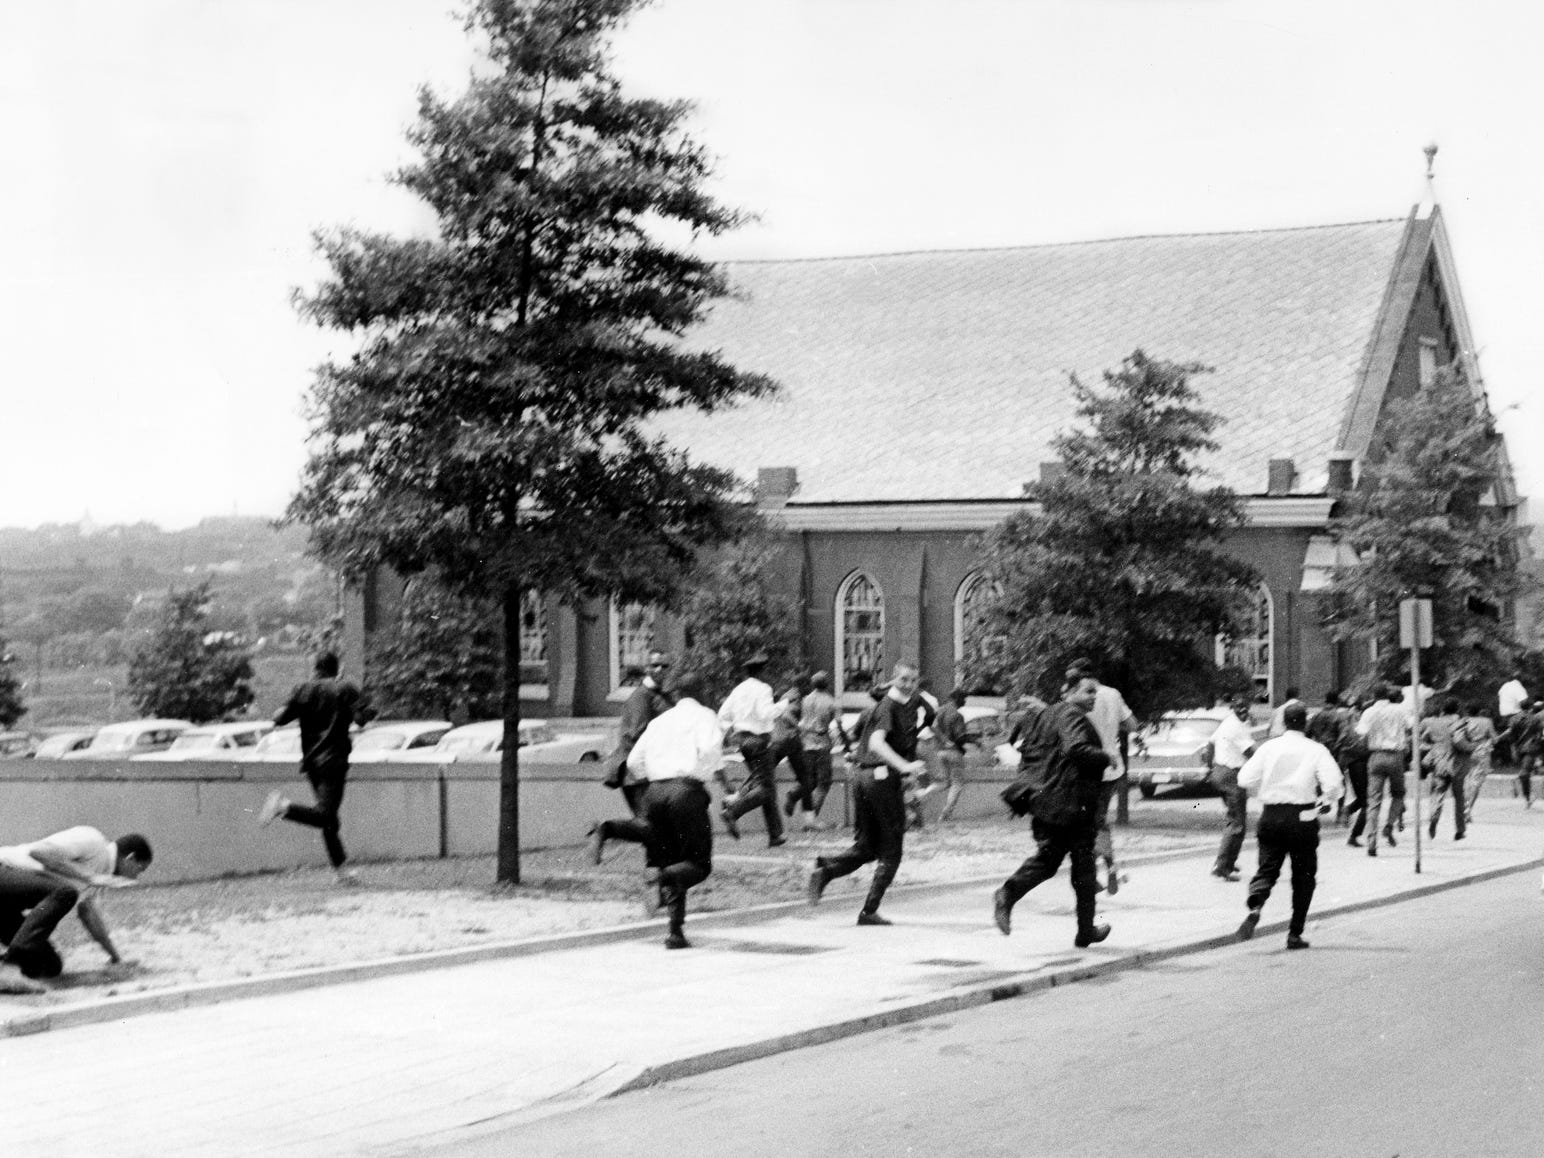 Black demonstrators race back to the safety of First Baptist Church after daylong protest marches downtown May 8, 1963. One of the leaders of the demonstrators, the Rev. J. Metz Rollins, center, guided the protesters back home. After they returned from the final march, a group of about 30 white youths began throwing rocks and soft drink bottles.